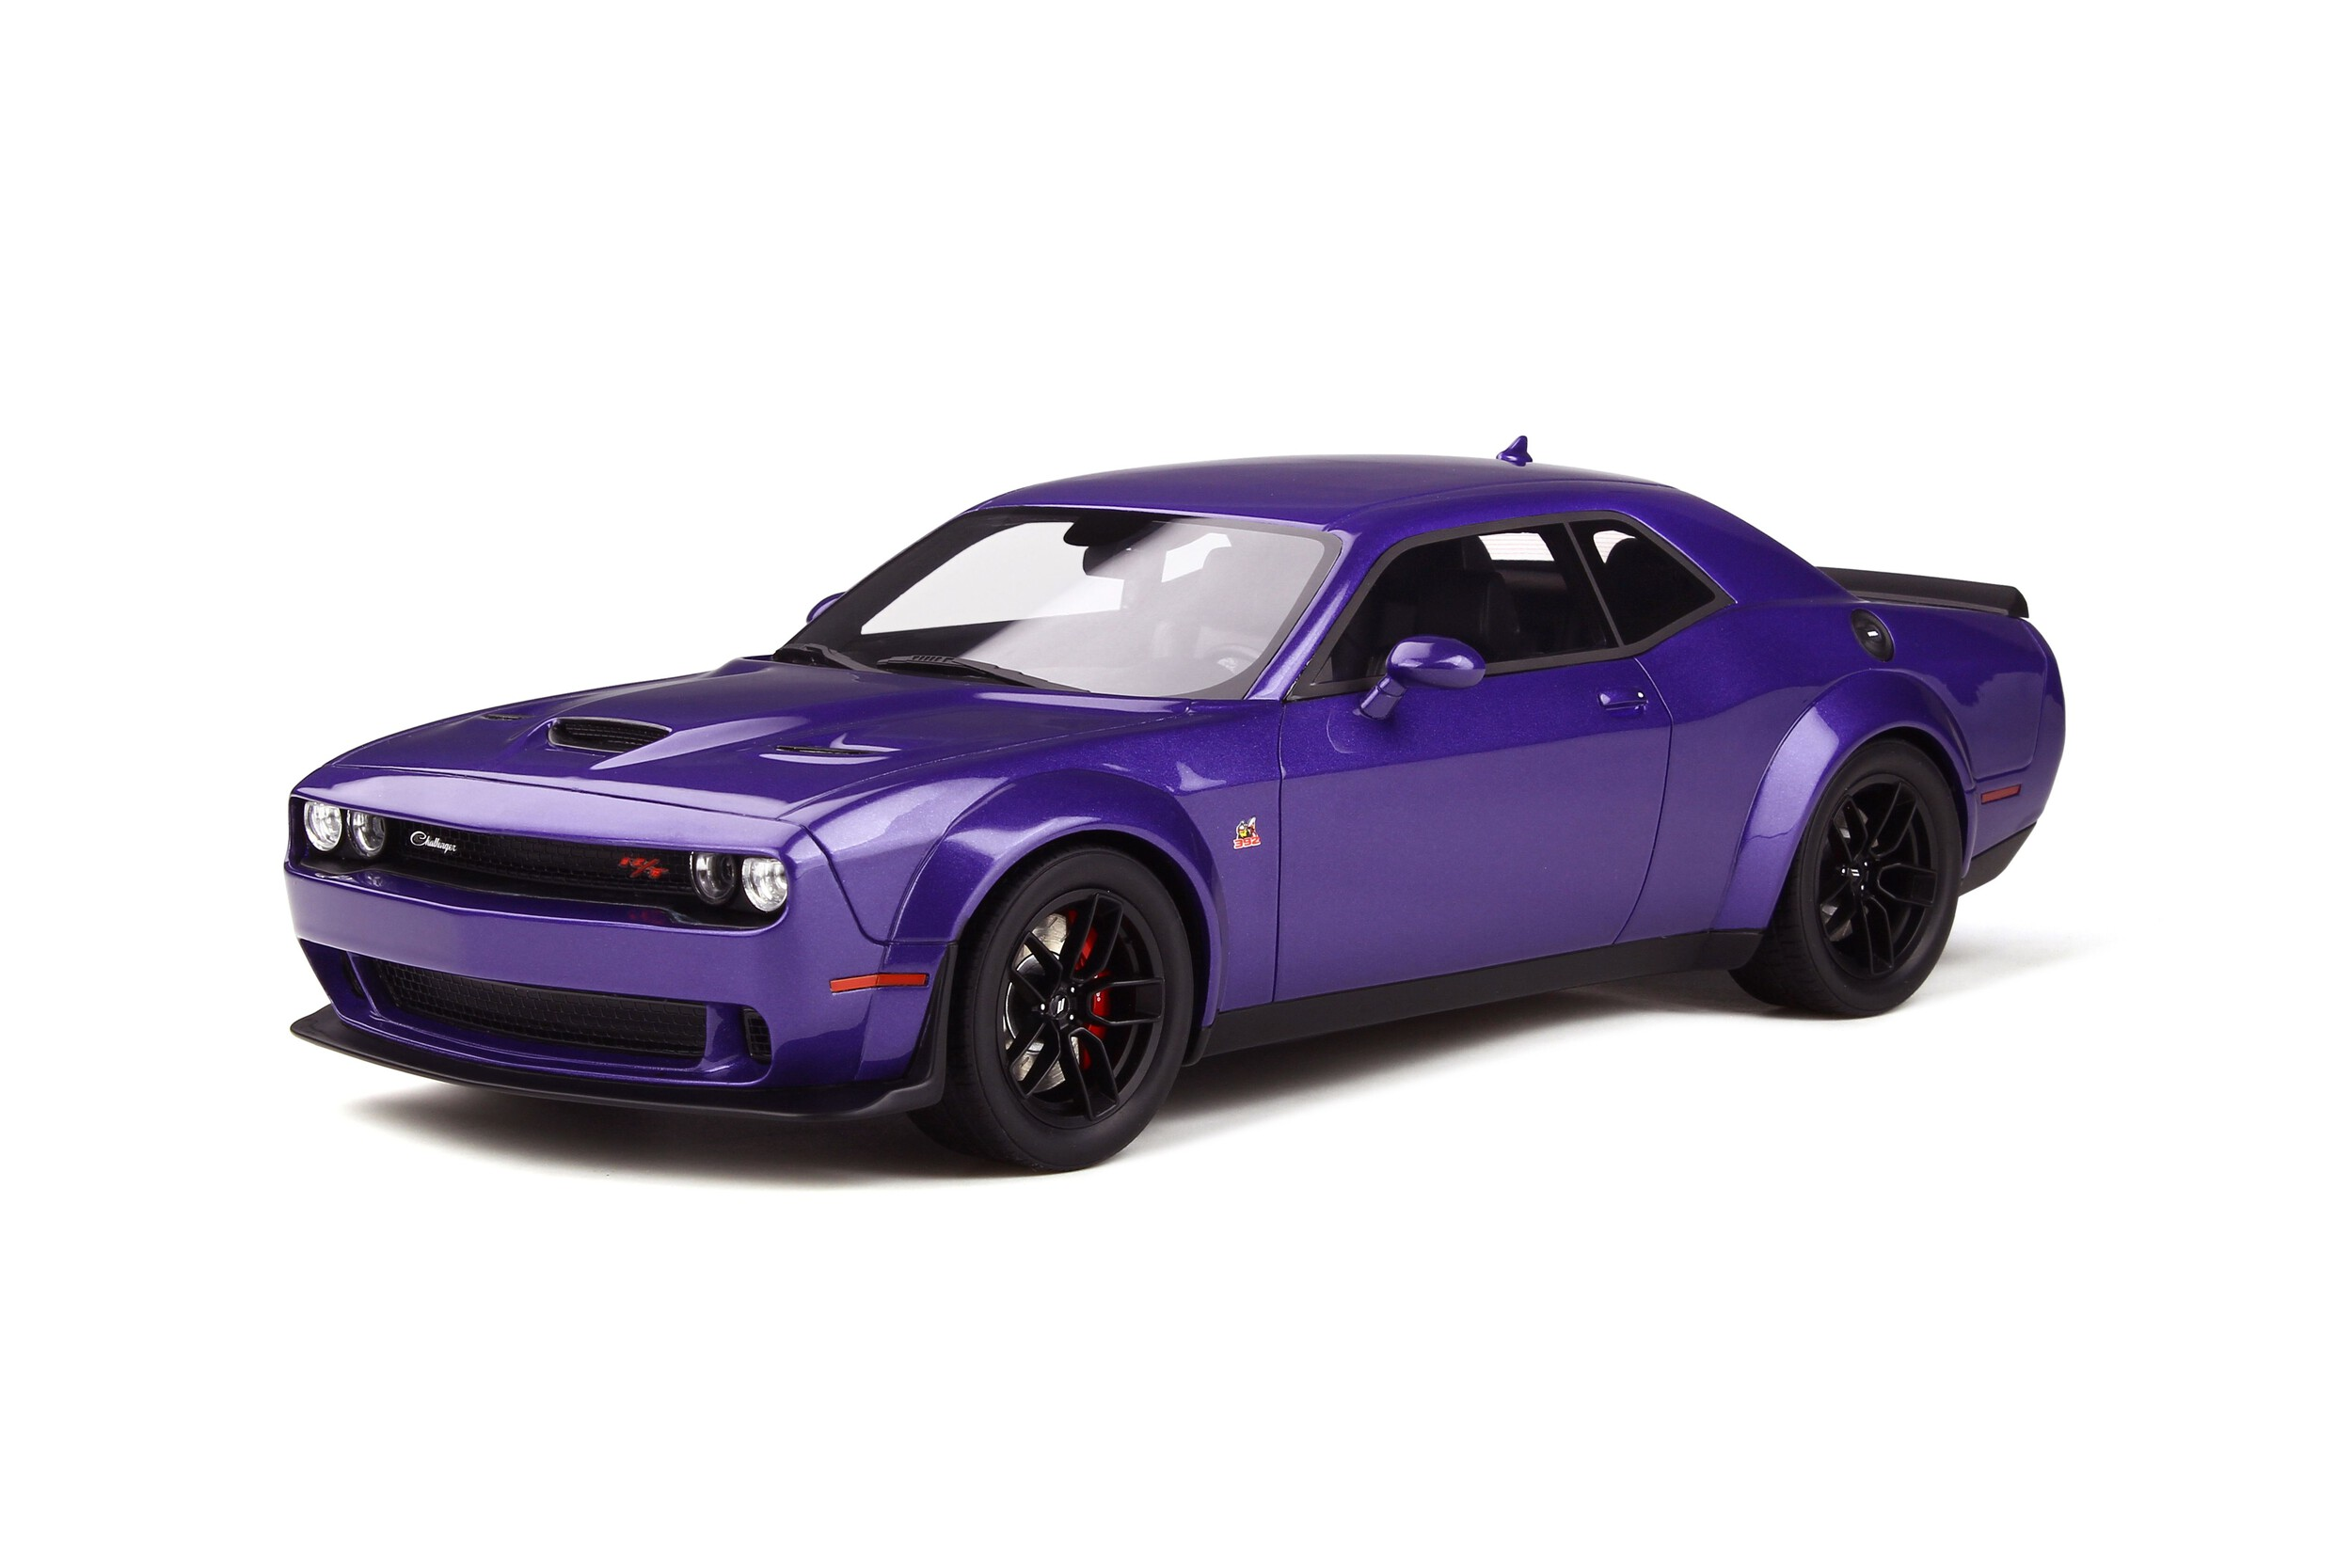 dodge charger scat pack toy car DODGE CHALLENGER R/T SCAT PACK WIDEBODY - Model car collection